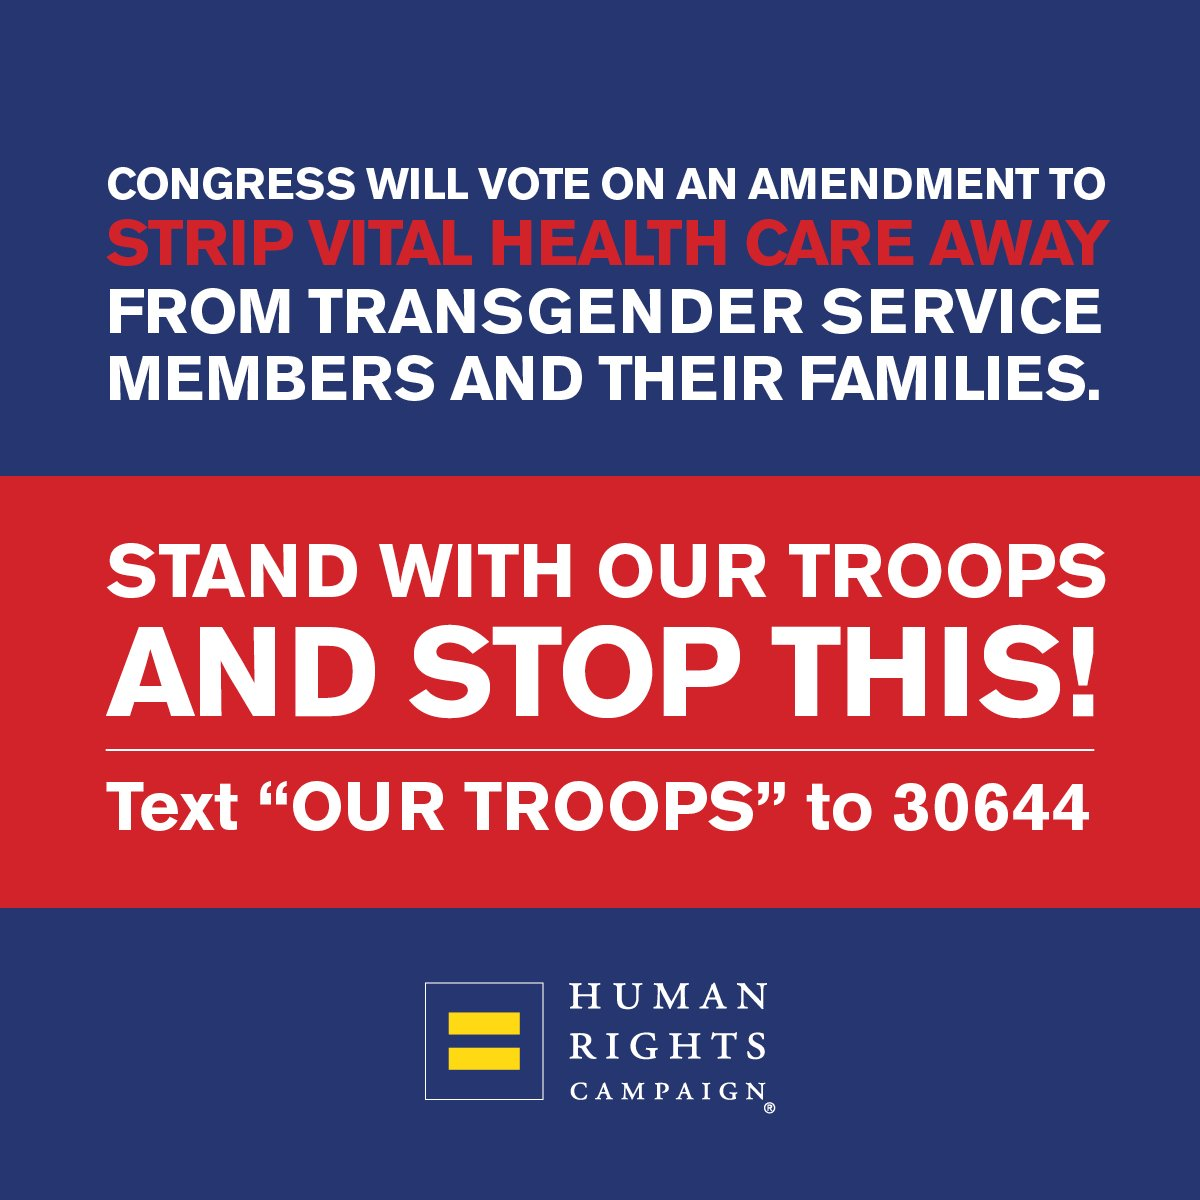 #Transgender service members risk their lives to protect this nation & they deserve the health care that will protect them. #NDAApic.twitter.com/UpPHc6G1JD